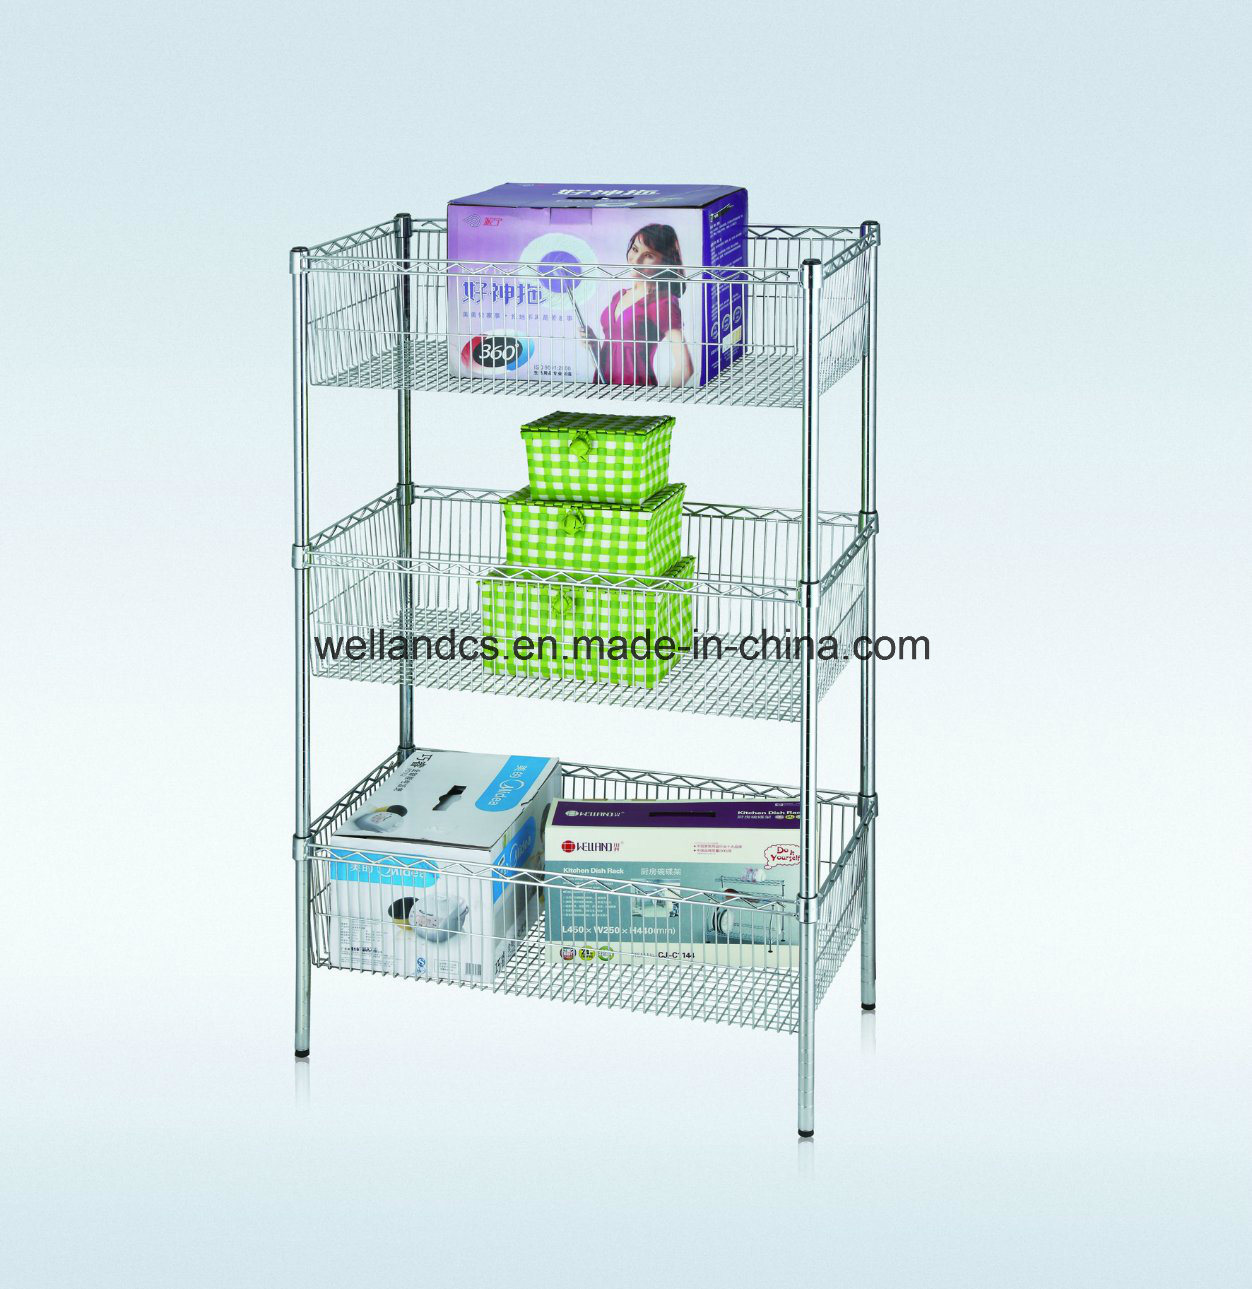 China 3 Tiers Chrome Metal Wire Basket Rack for Commercial ...